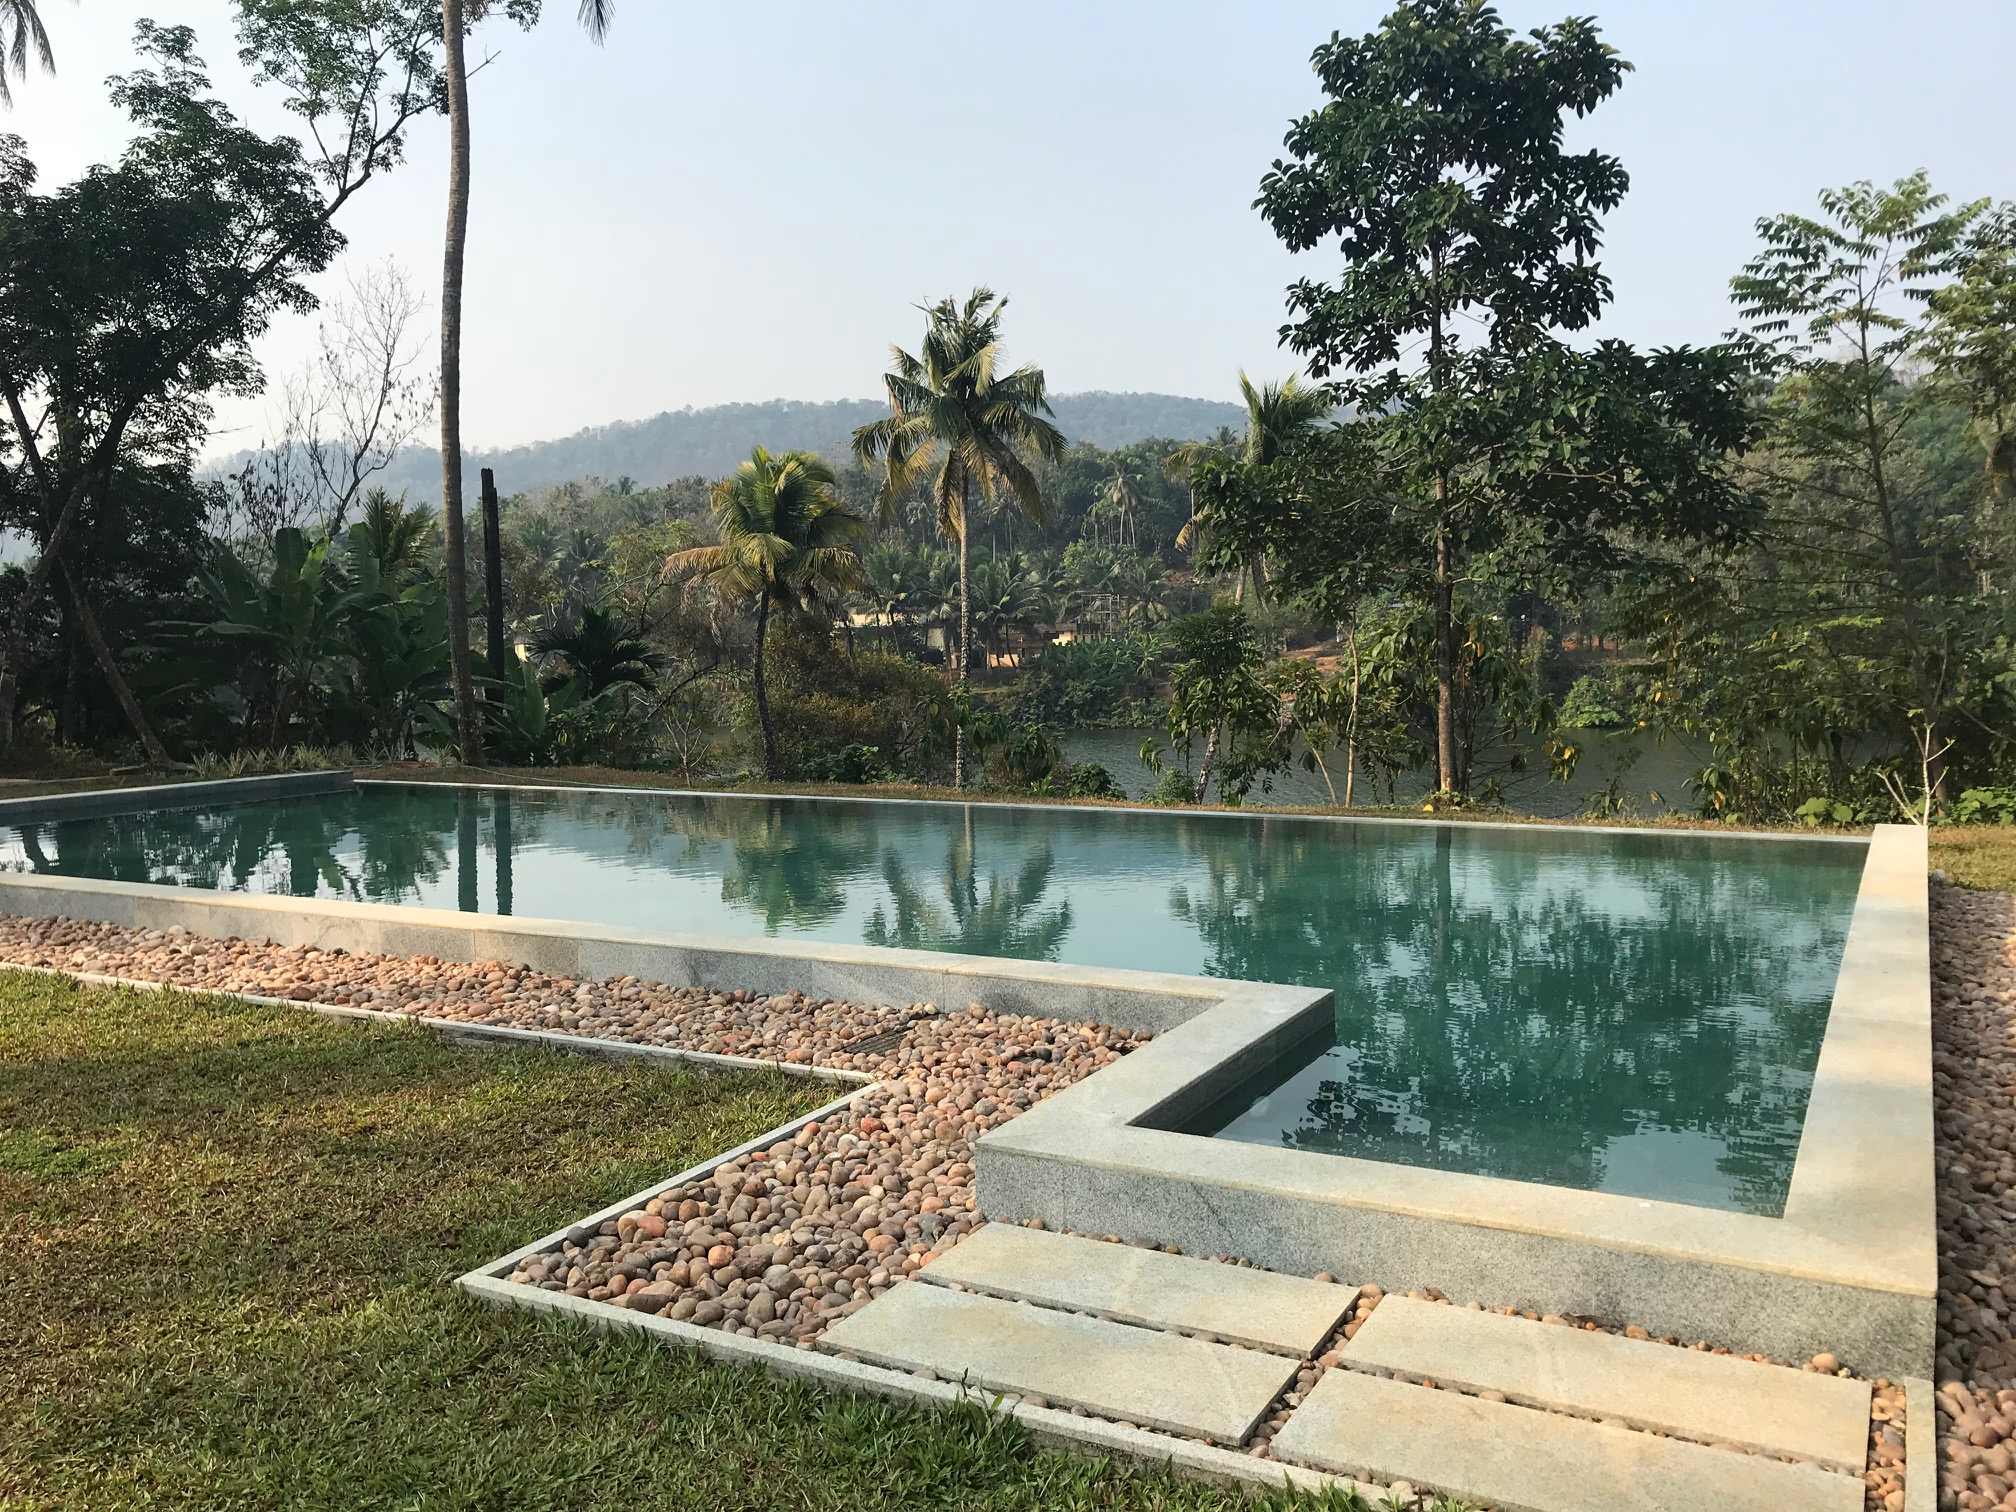 The pool at Windermere River House with views of the Periyar River